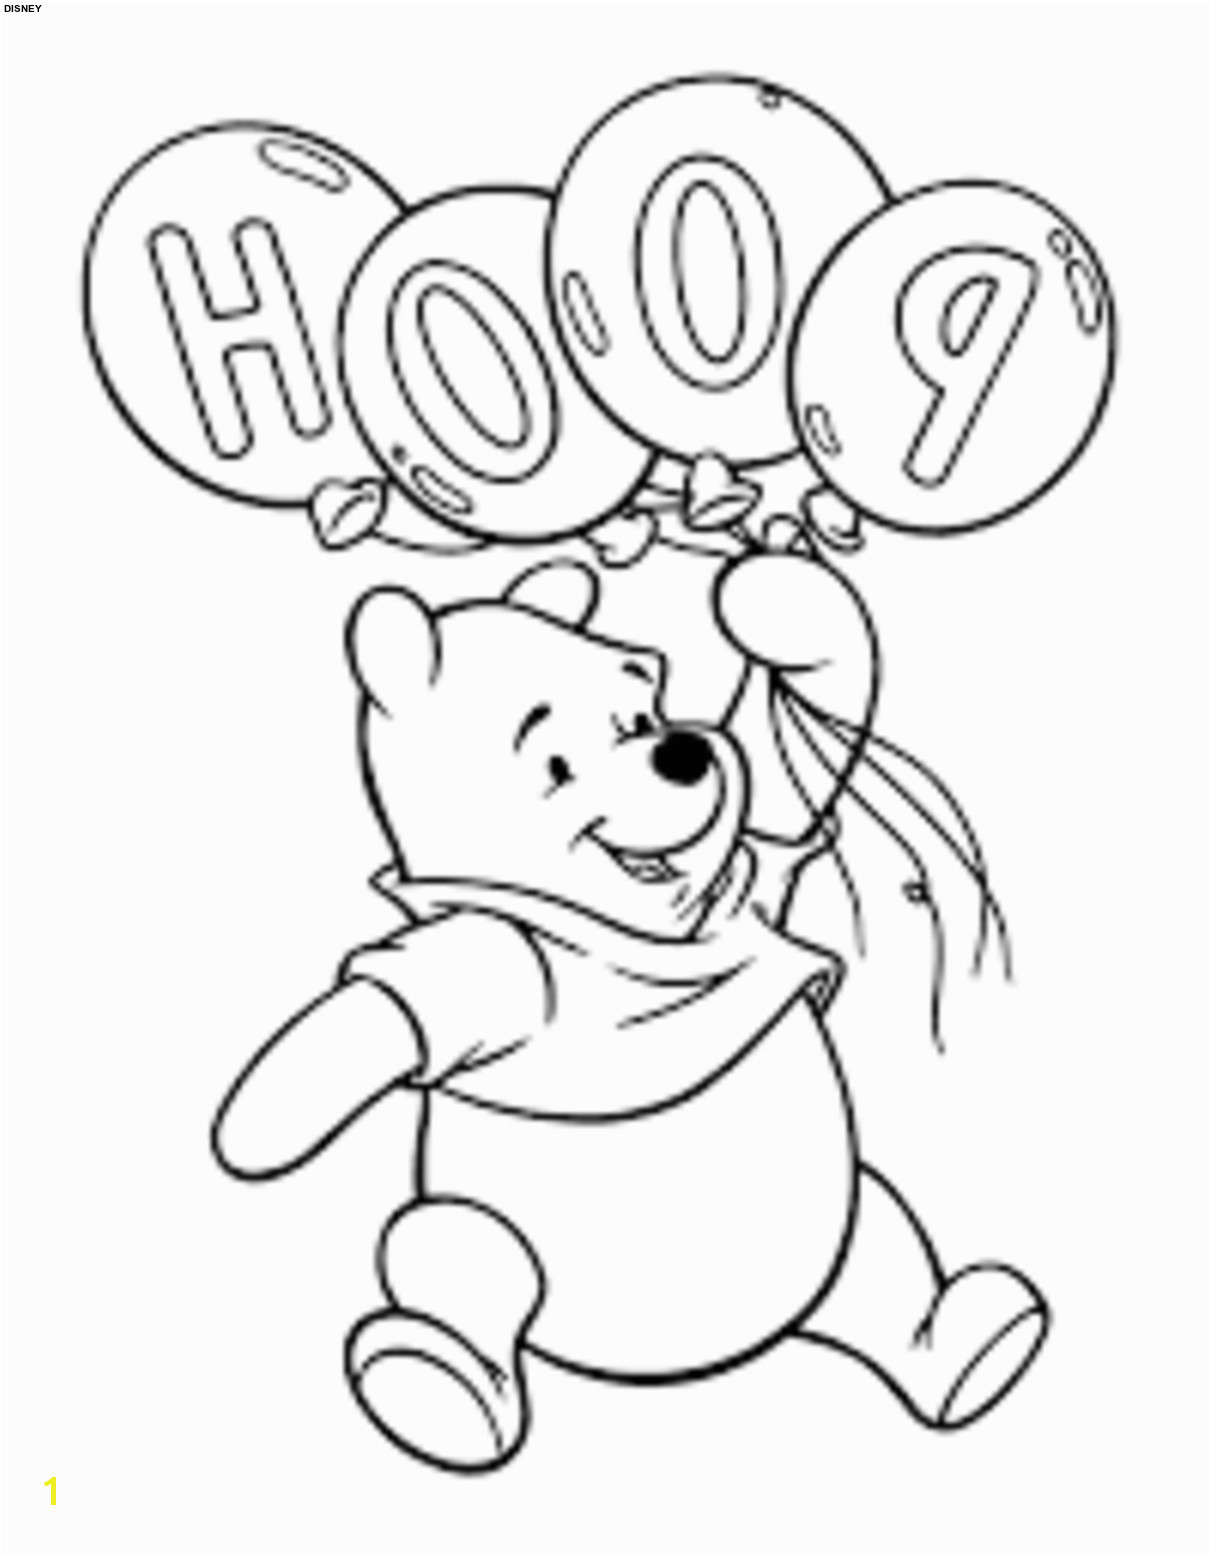 Best of disney jr coloring pages Free 9 d Best Coloring Pages Cartoons 41